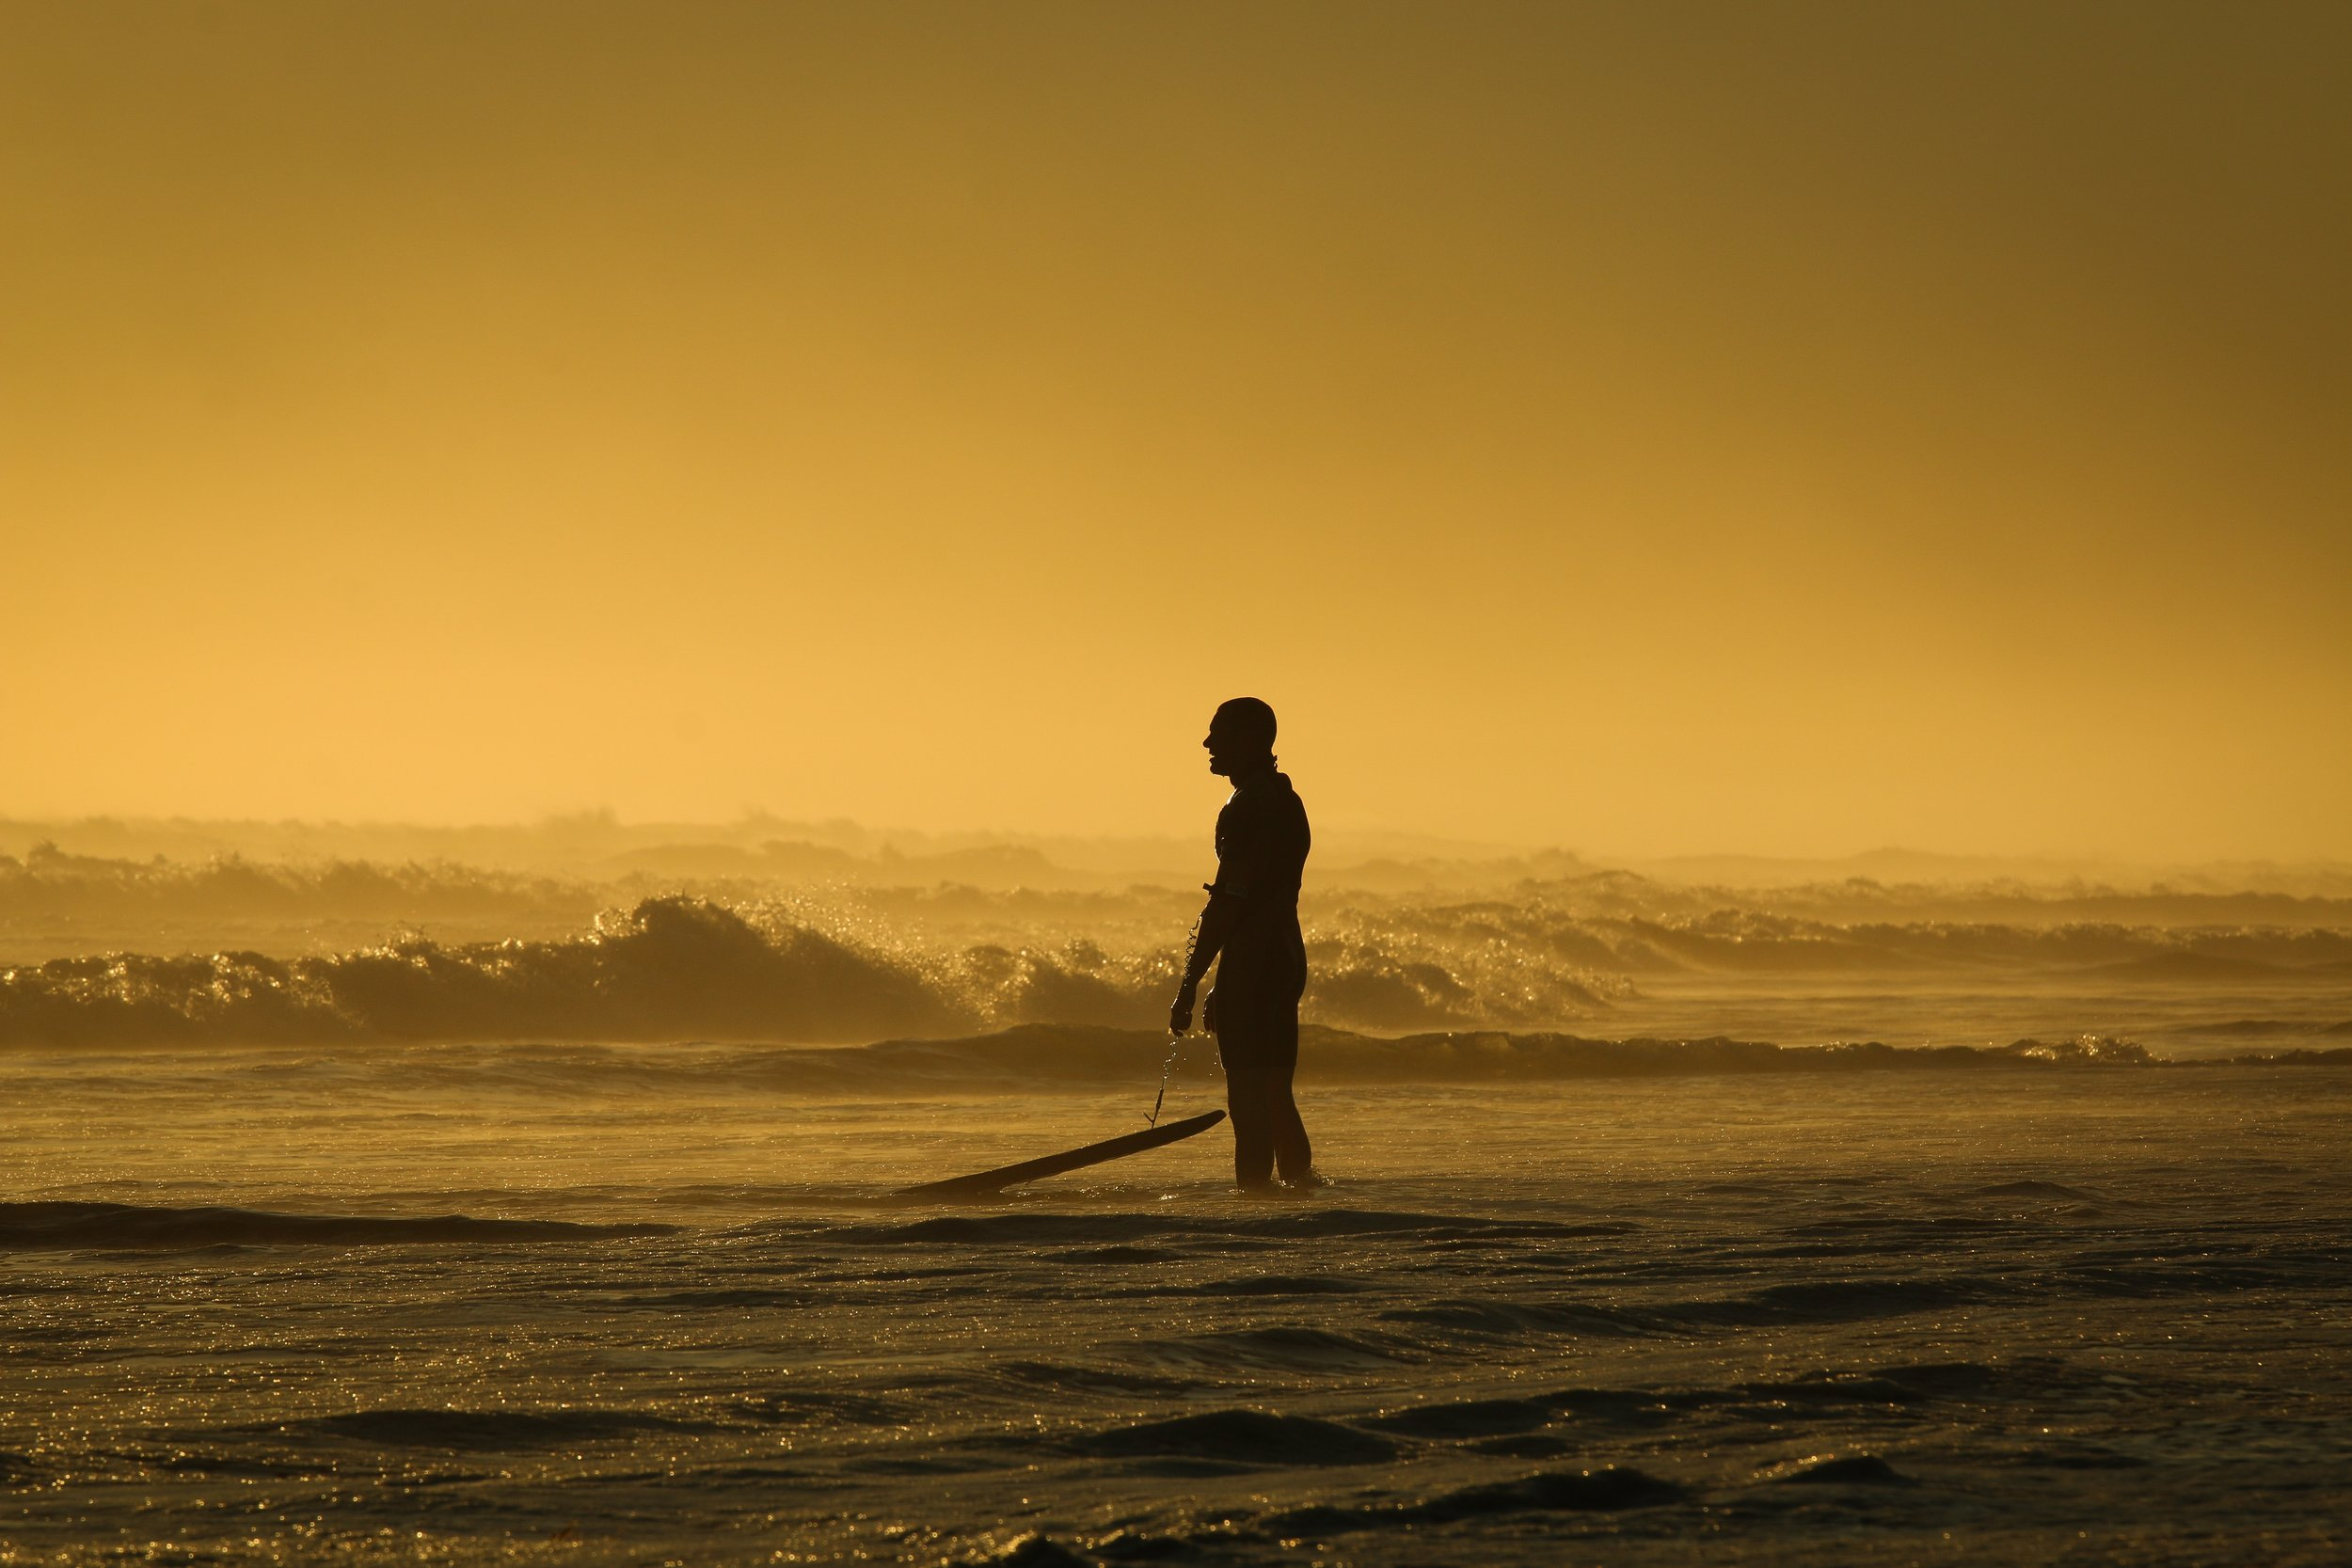 backlit-beach-dusk-147414.jpg